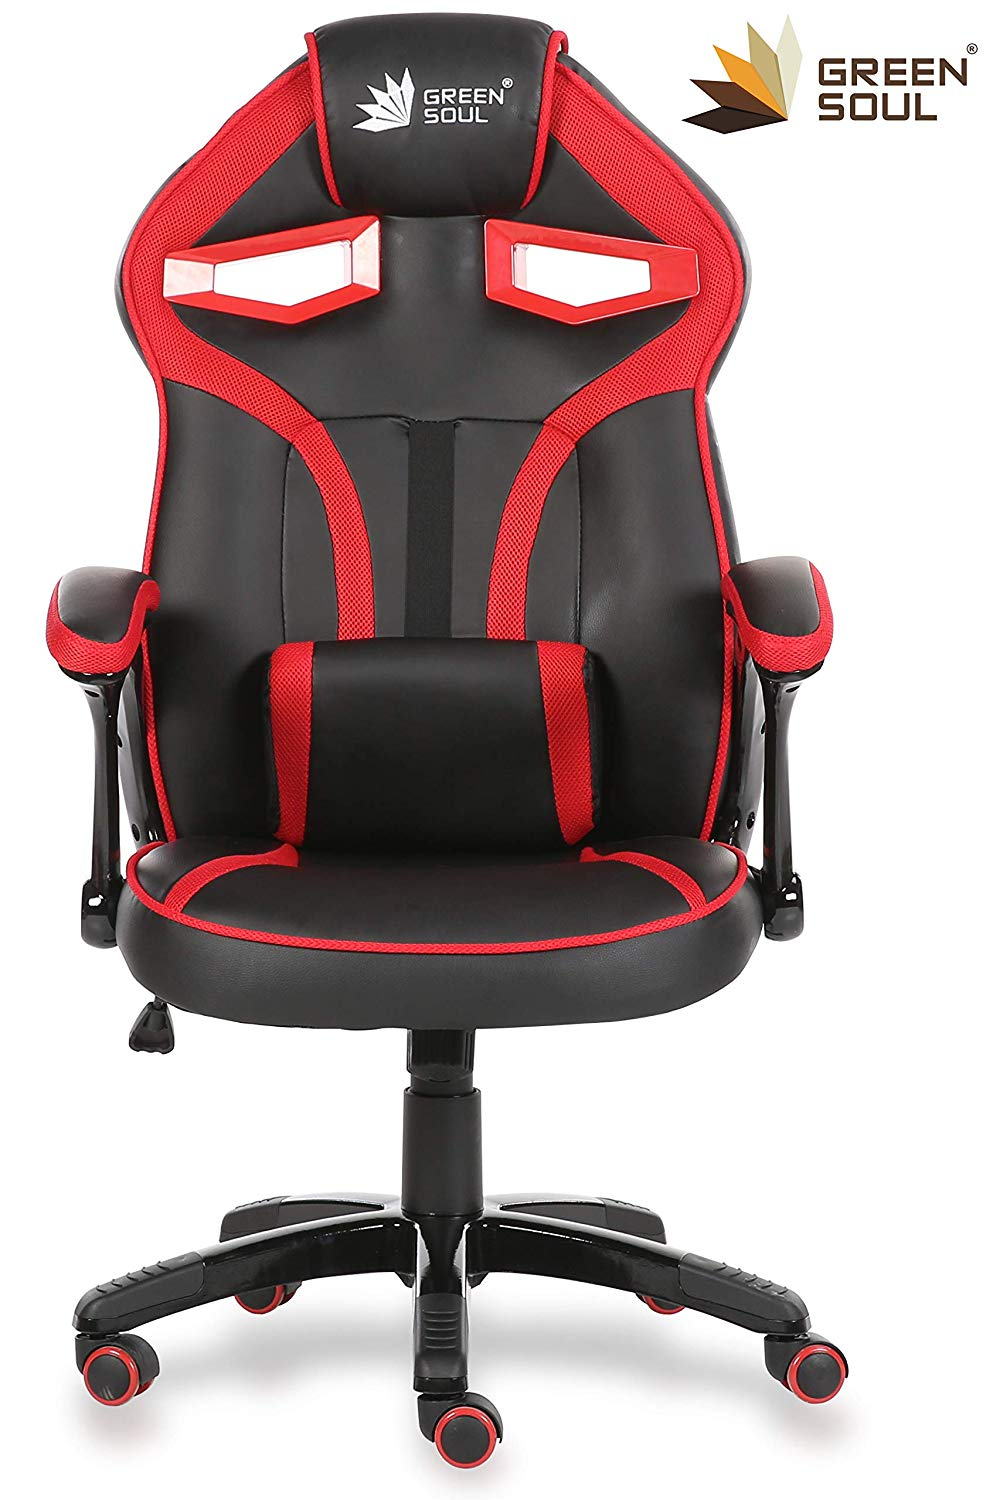 Best PC Gaming Chair Under 10000 INR - GadgetMeasure